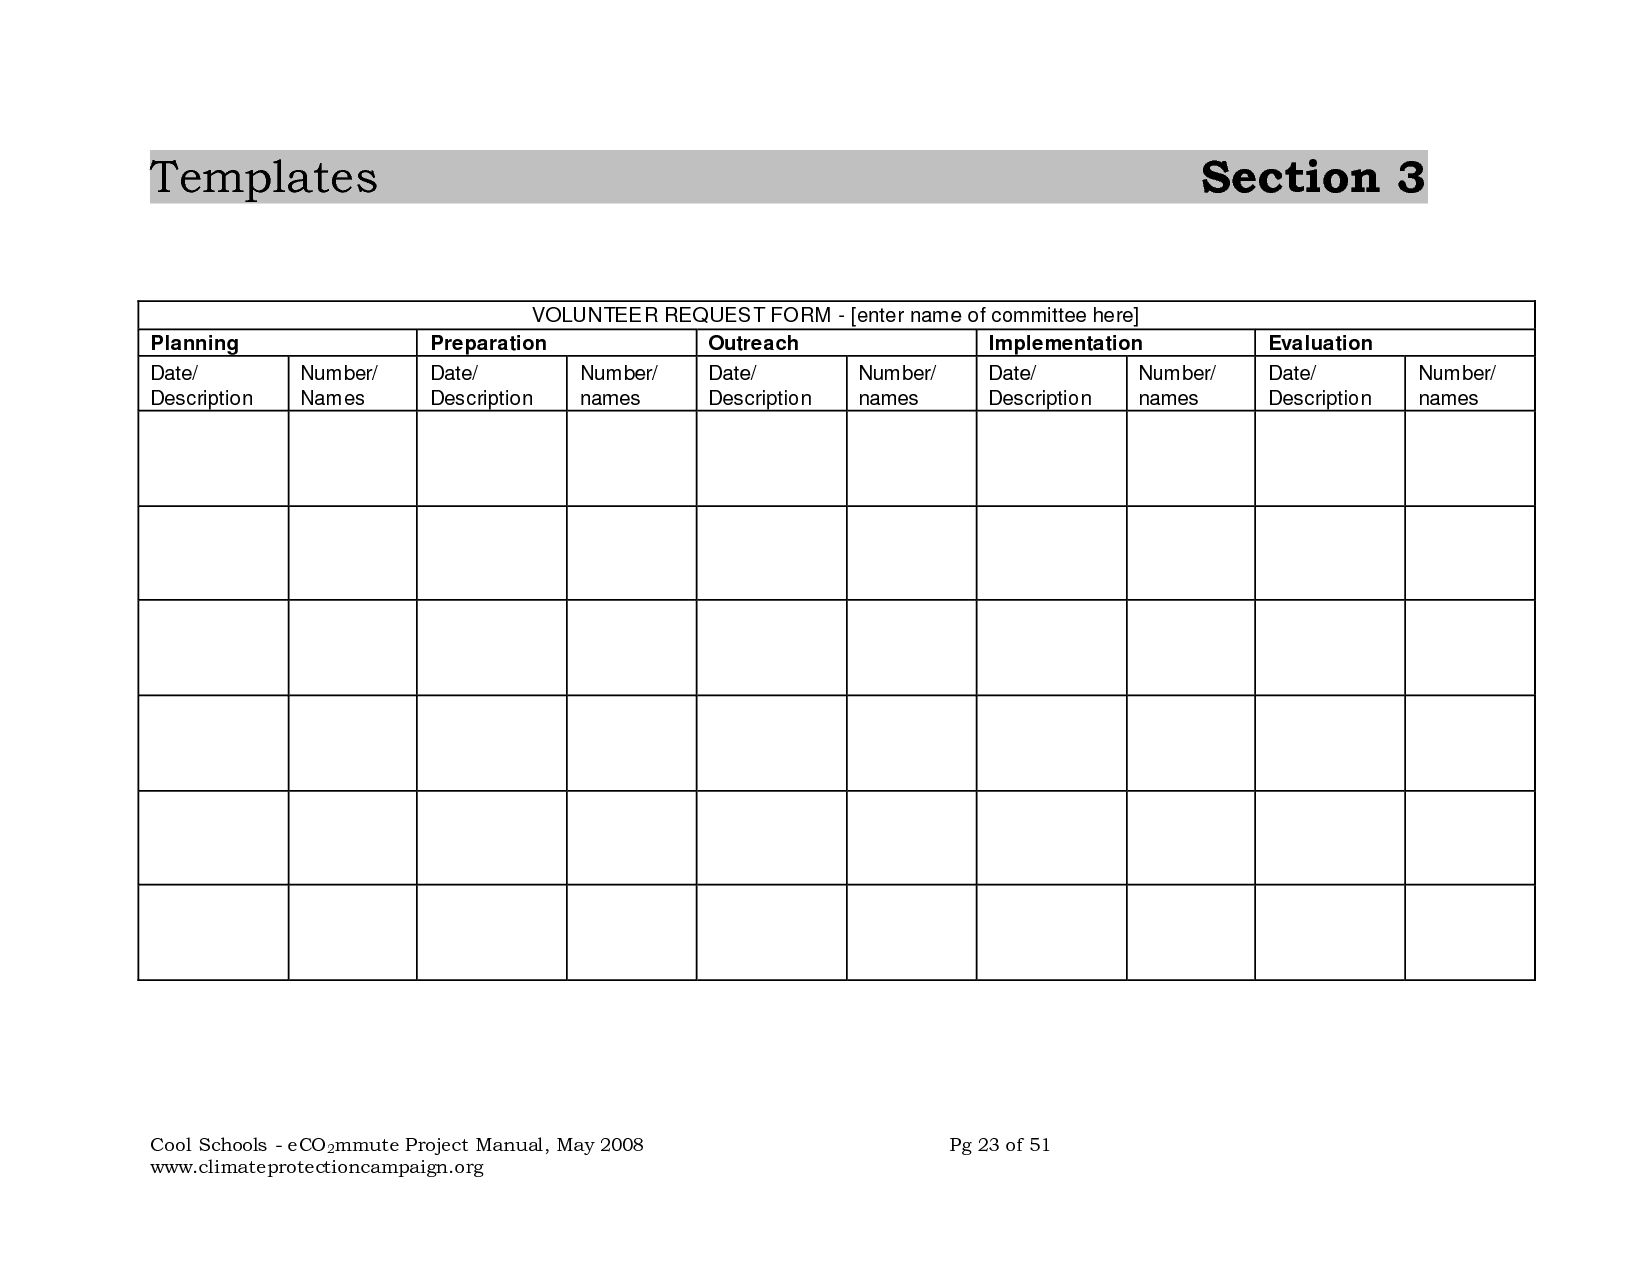 Inventory Sheets Template – Inventory Sheets Printable